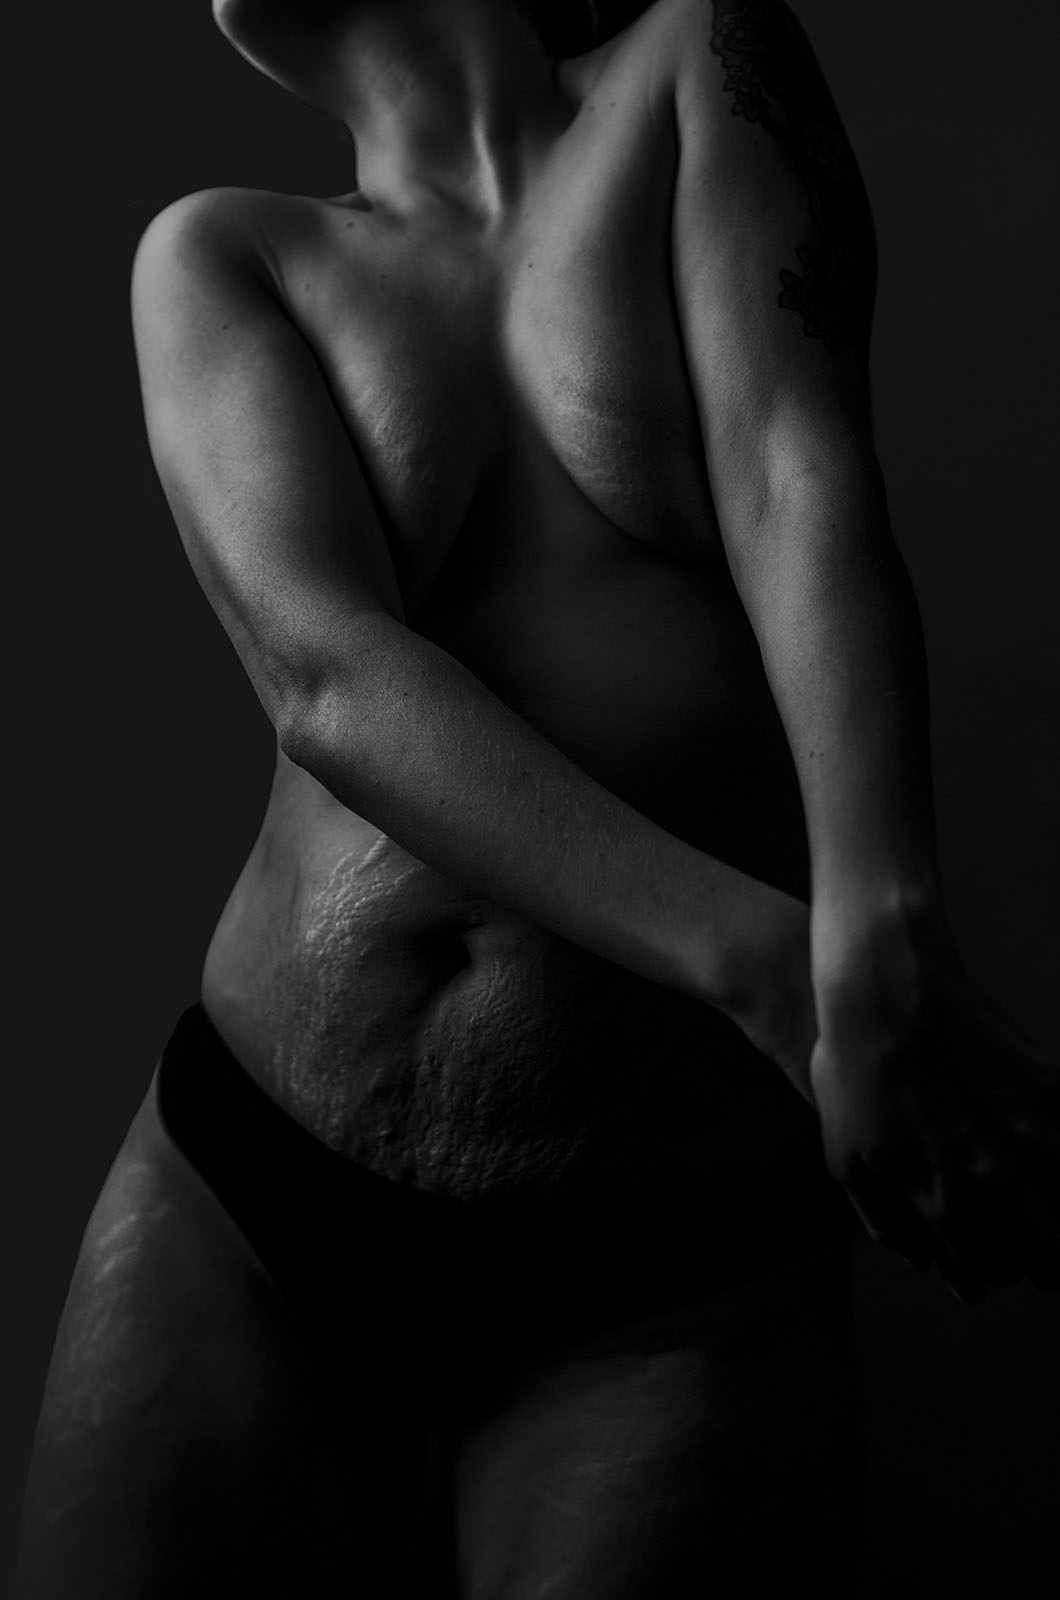 2019 Voice photo contest winner - a black and white image of a woman's stretch marks